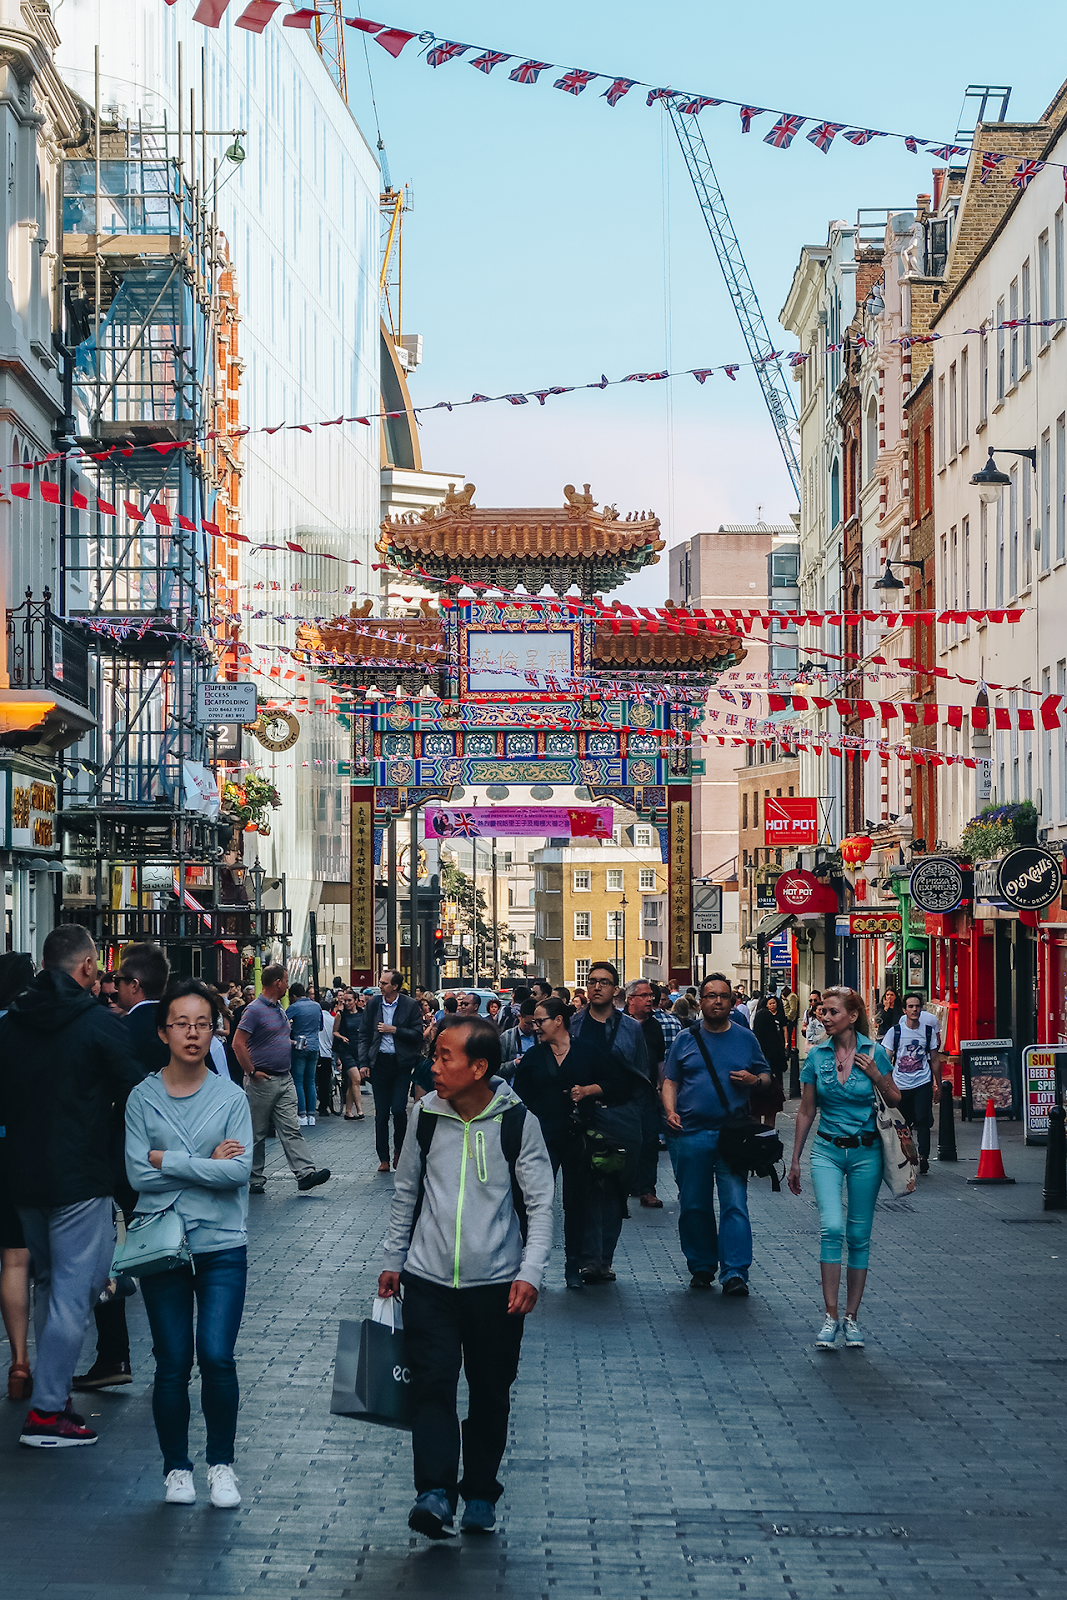 London Chinatown: Best Restaurants & Shops